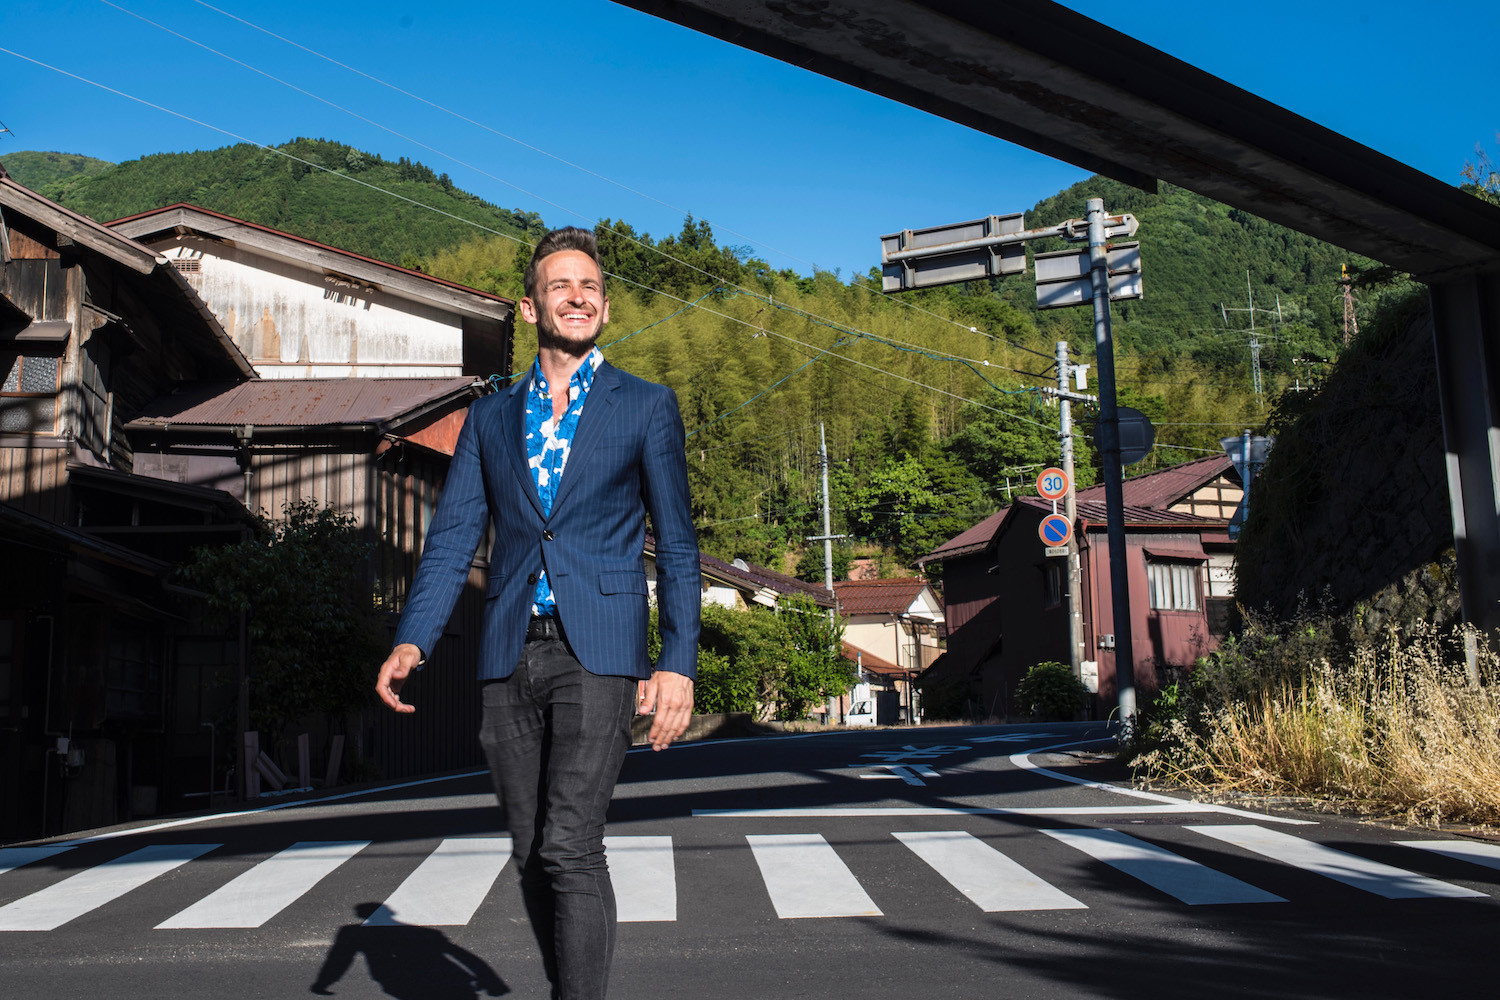 Robert Schrader exploring Japan off the beaten path